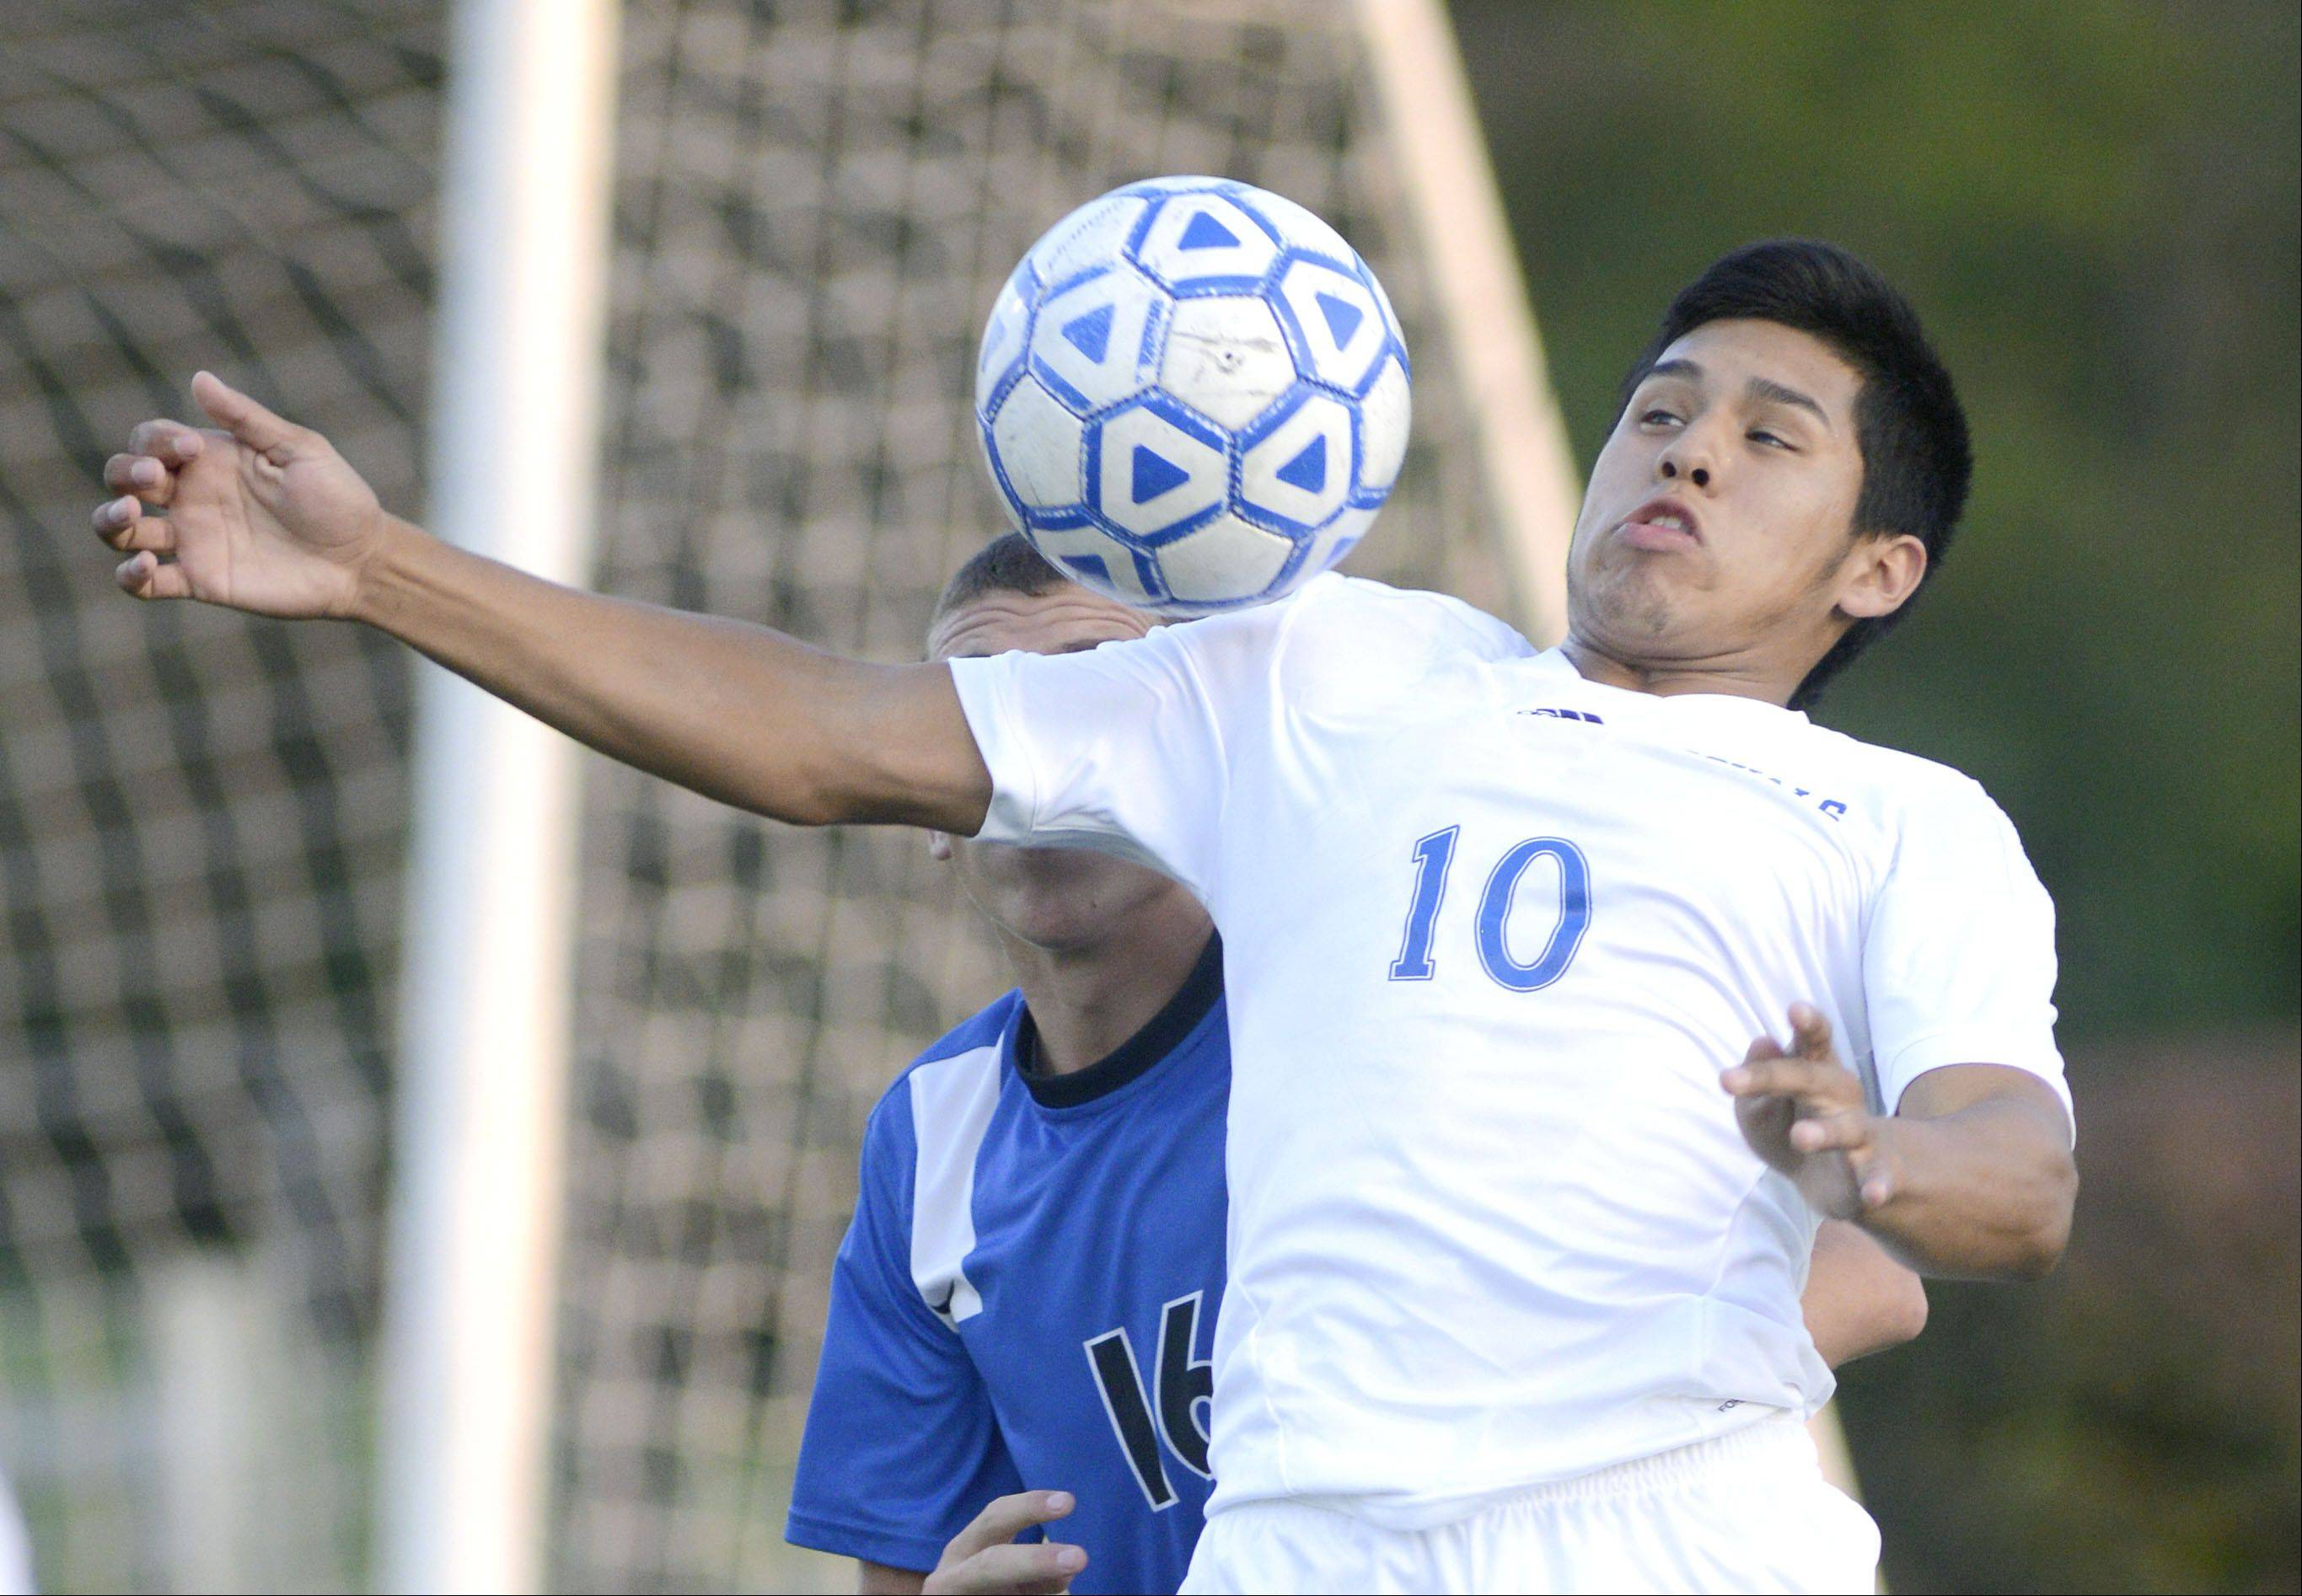 Larkin's Gonsalo Garcia leaps in front of St. Charles North's Nick Graham to deflect the ball with his chest in the first half on Tuesday at Memorial Field in Elgin.